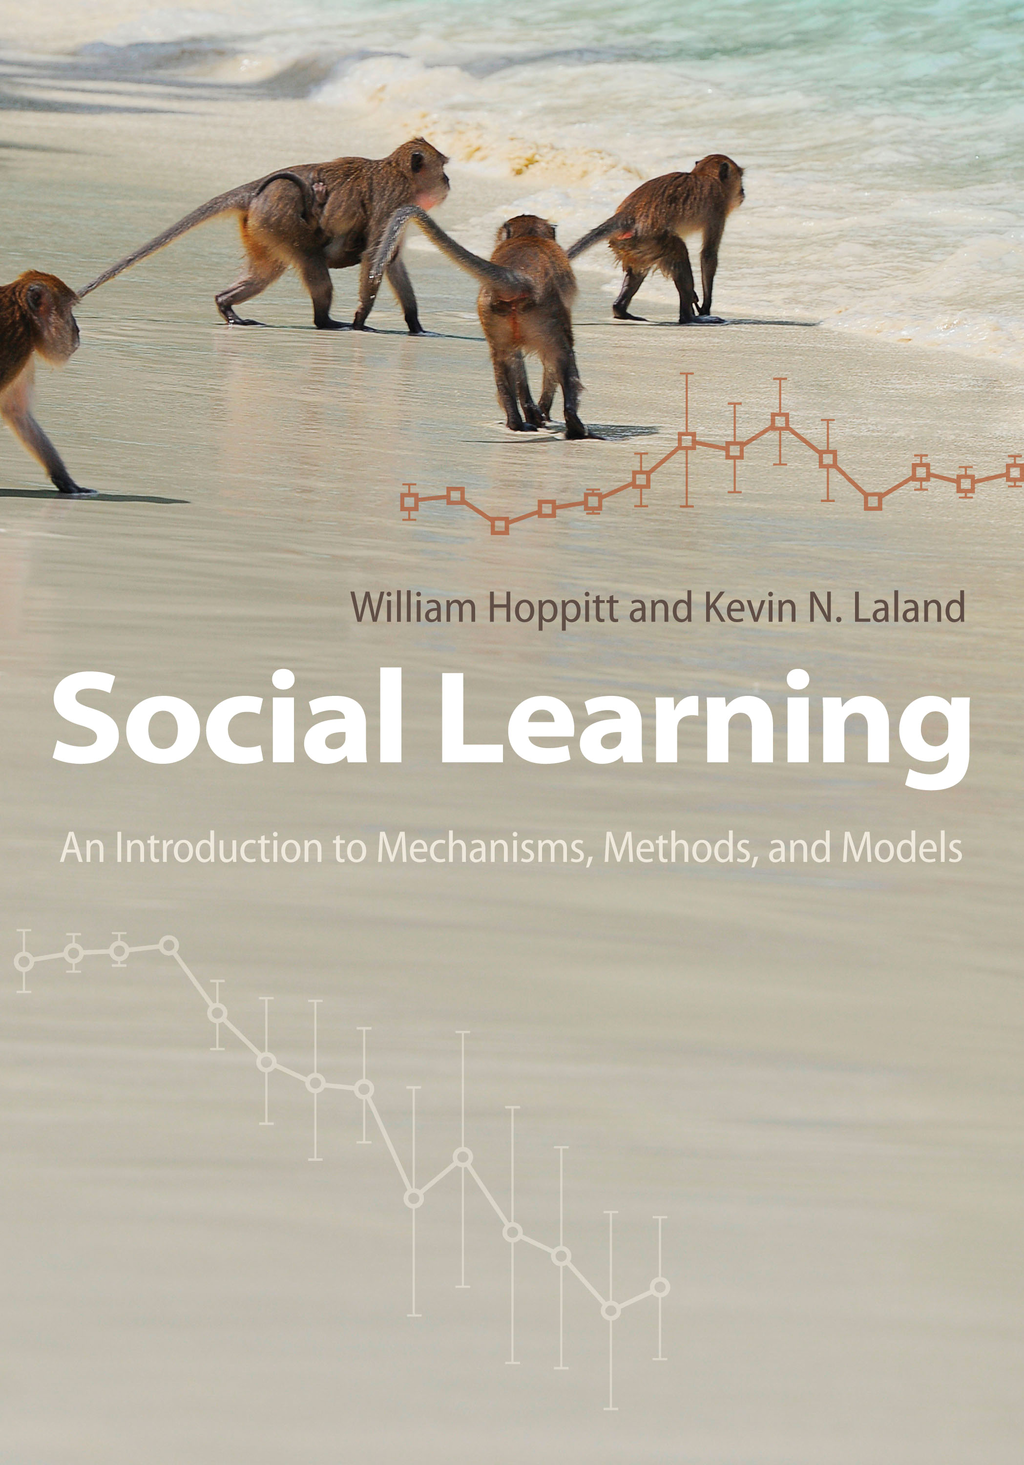 Social Learning An Introduction to Mechanisms,  Methods,  and Models